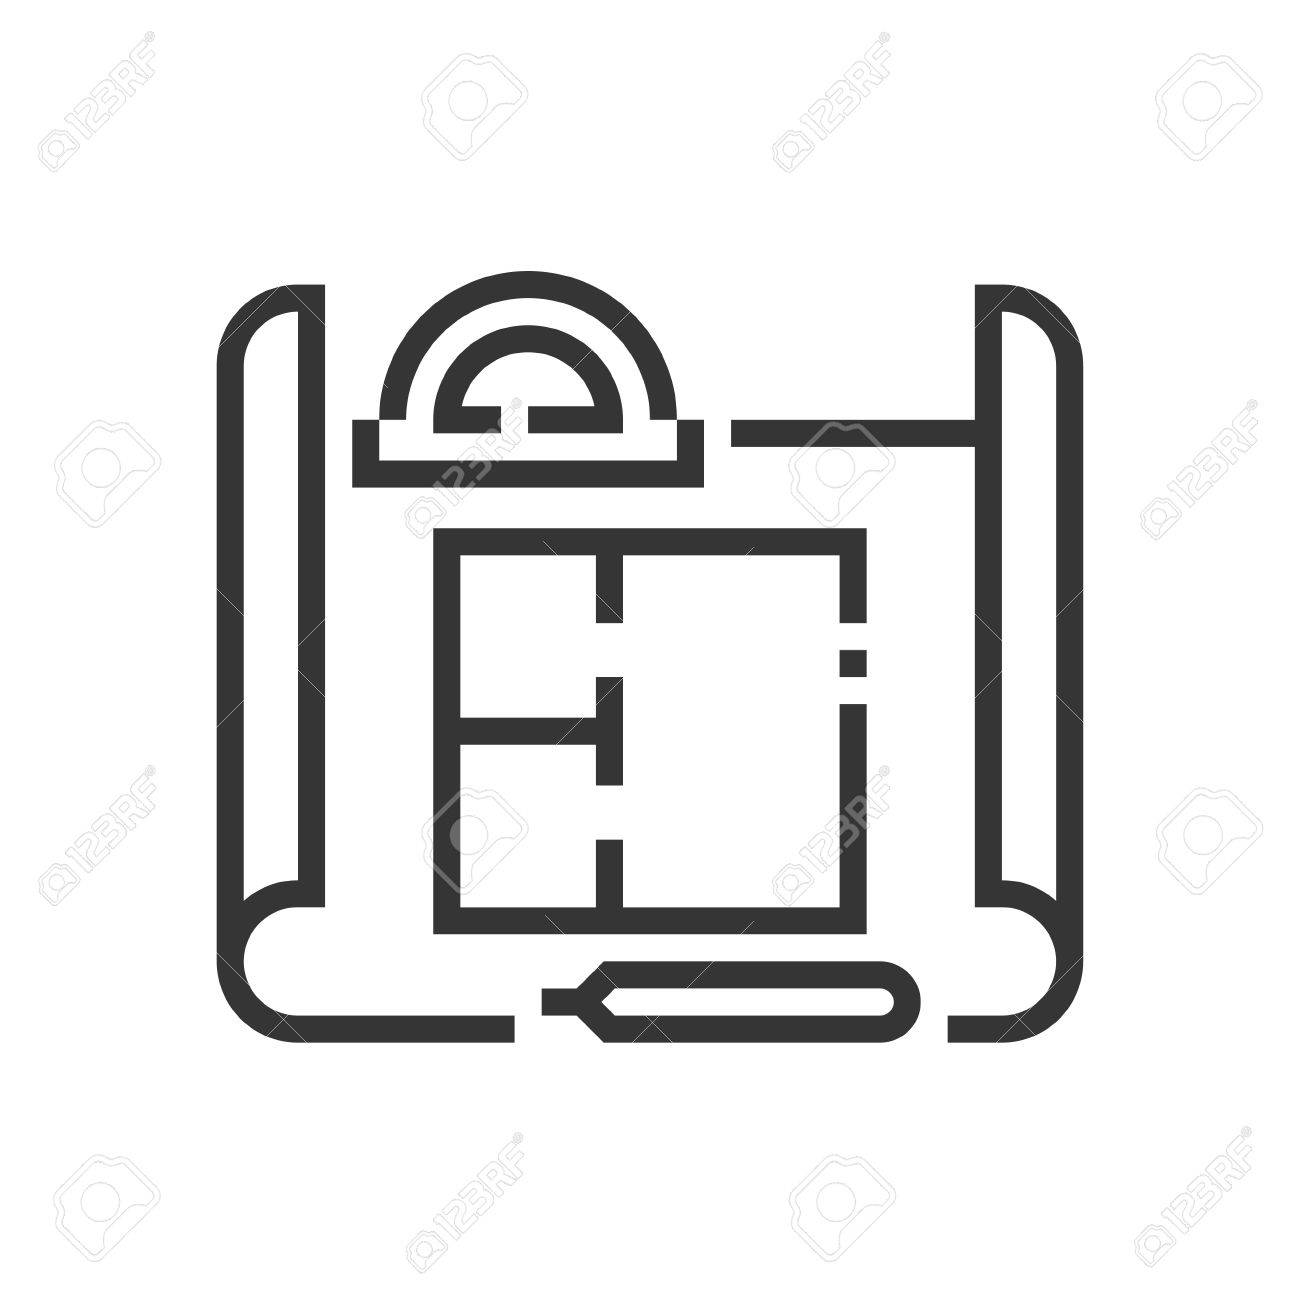 House plan icon, part of the square icons, real estate icon set